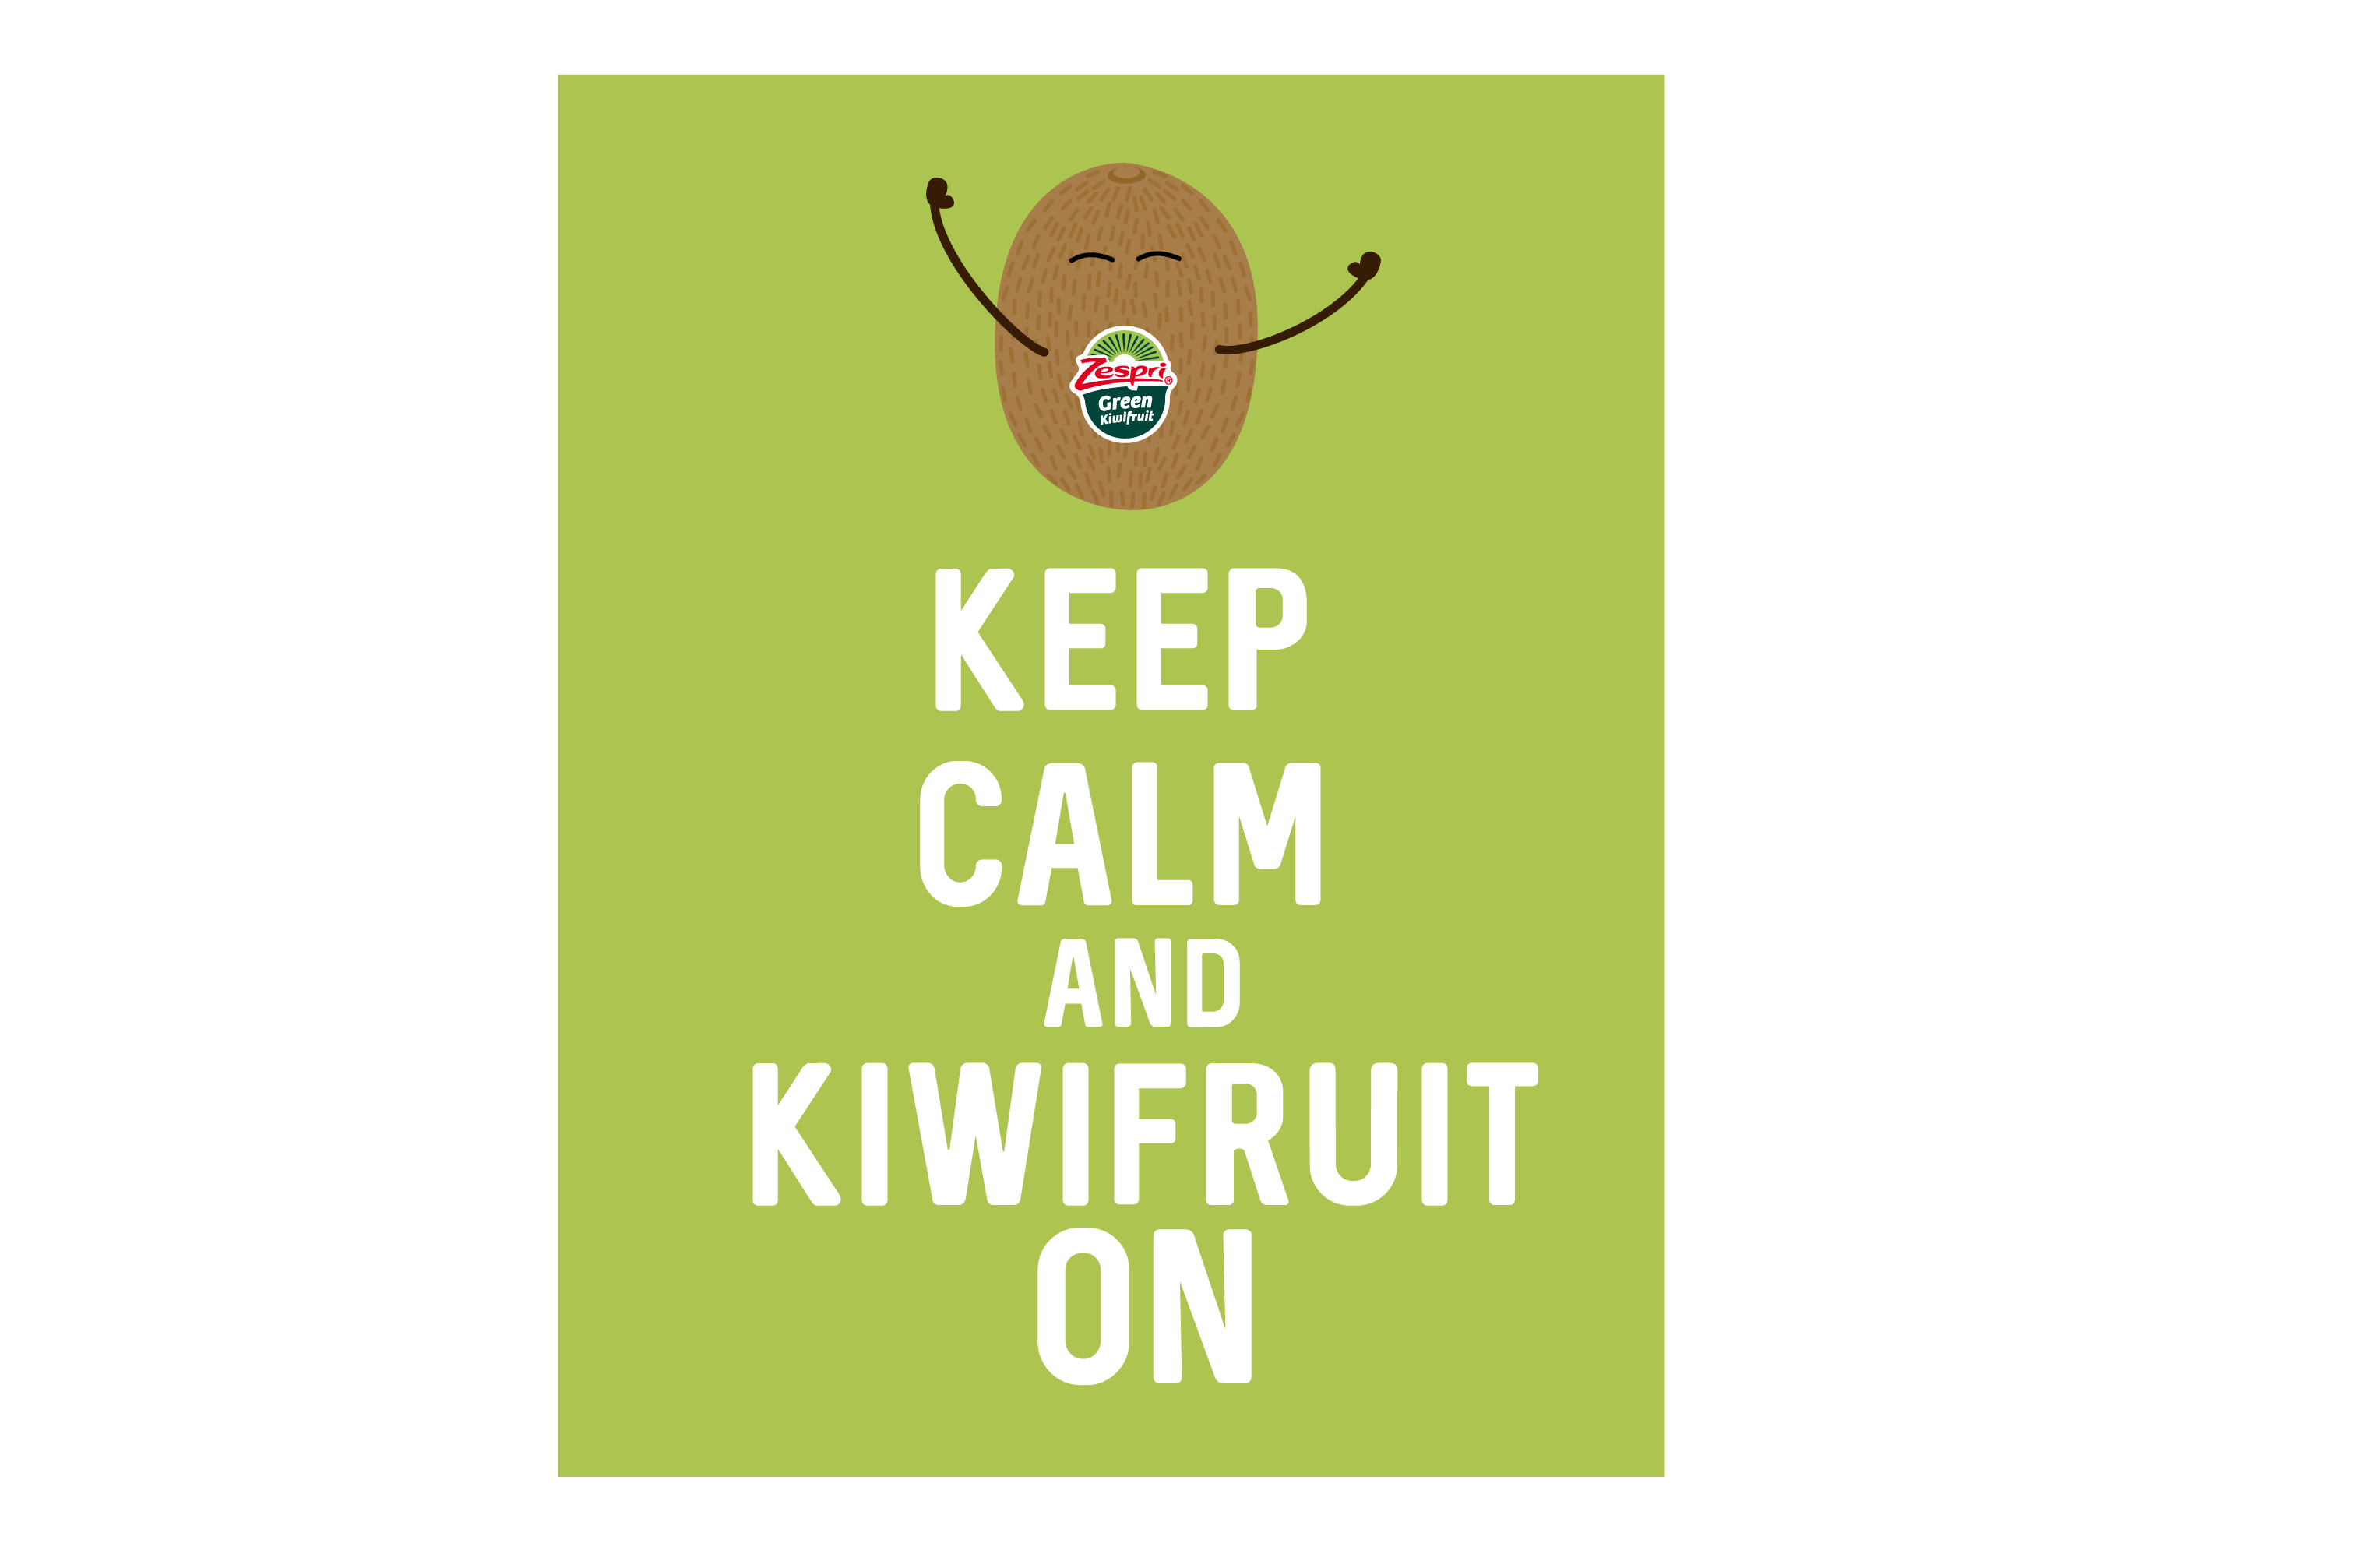 Keep_calm_and_kiwifruit_on_EN